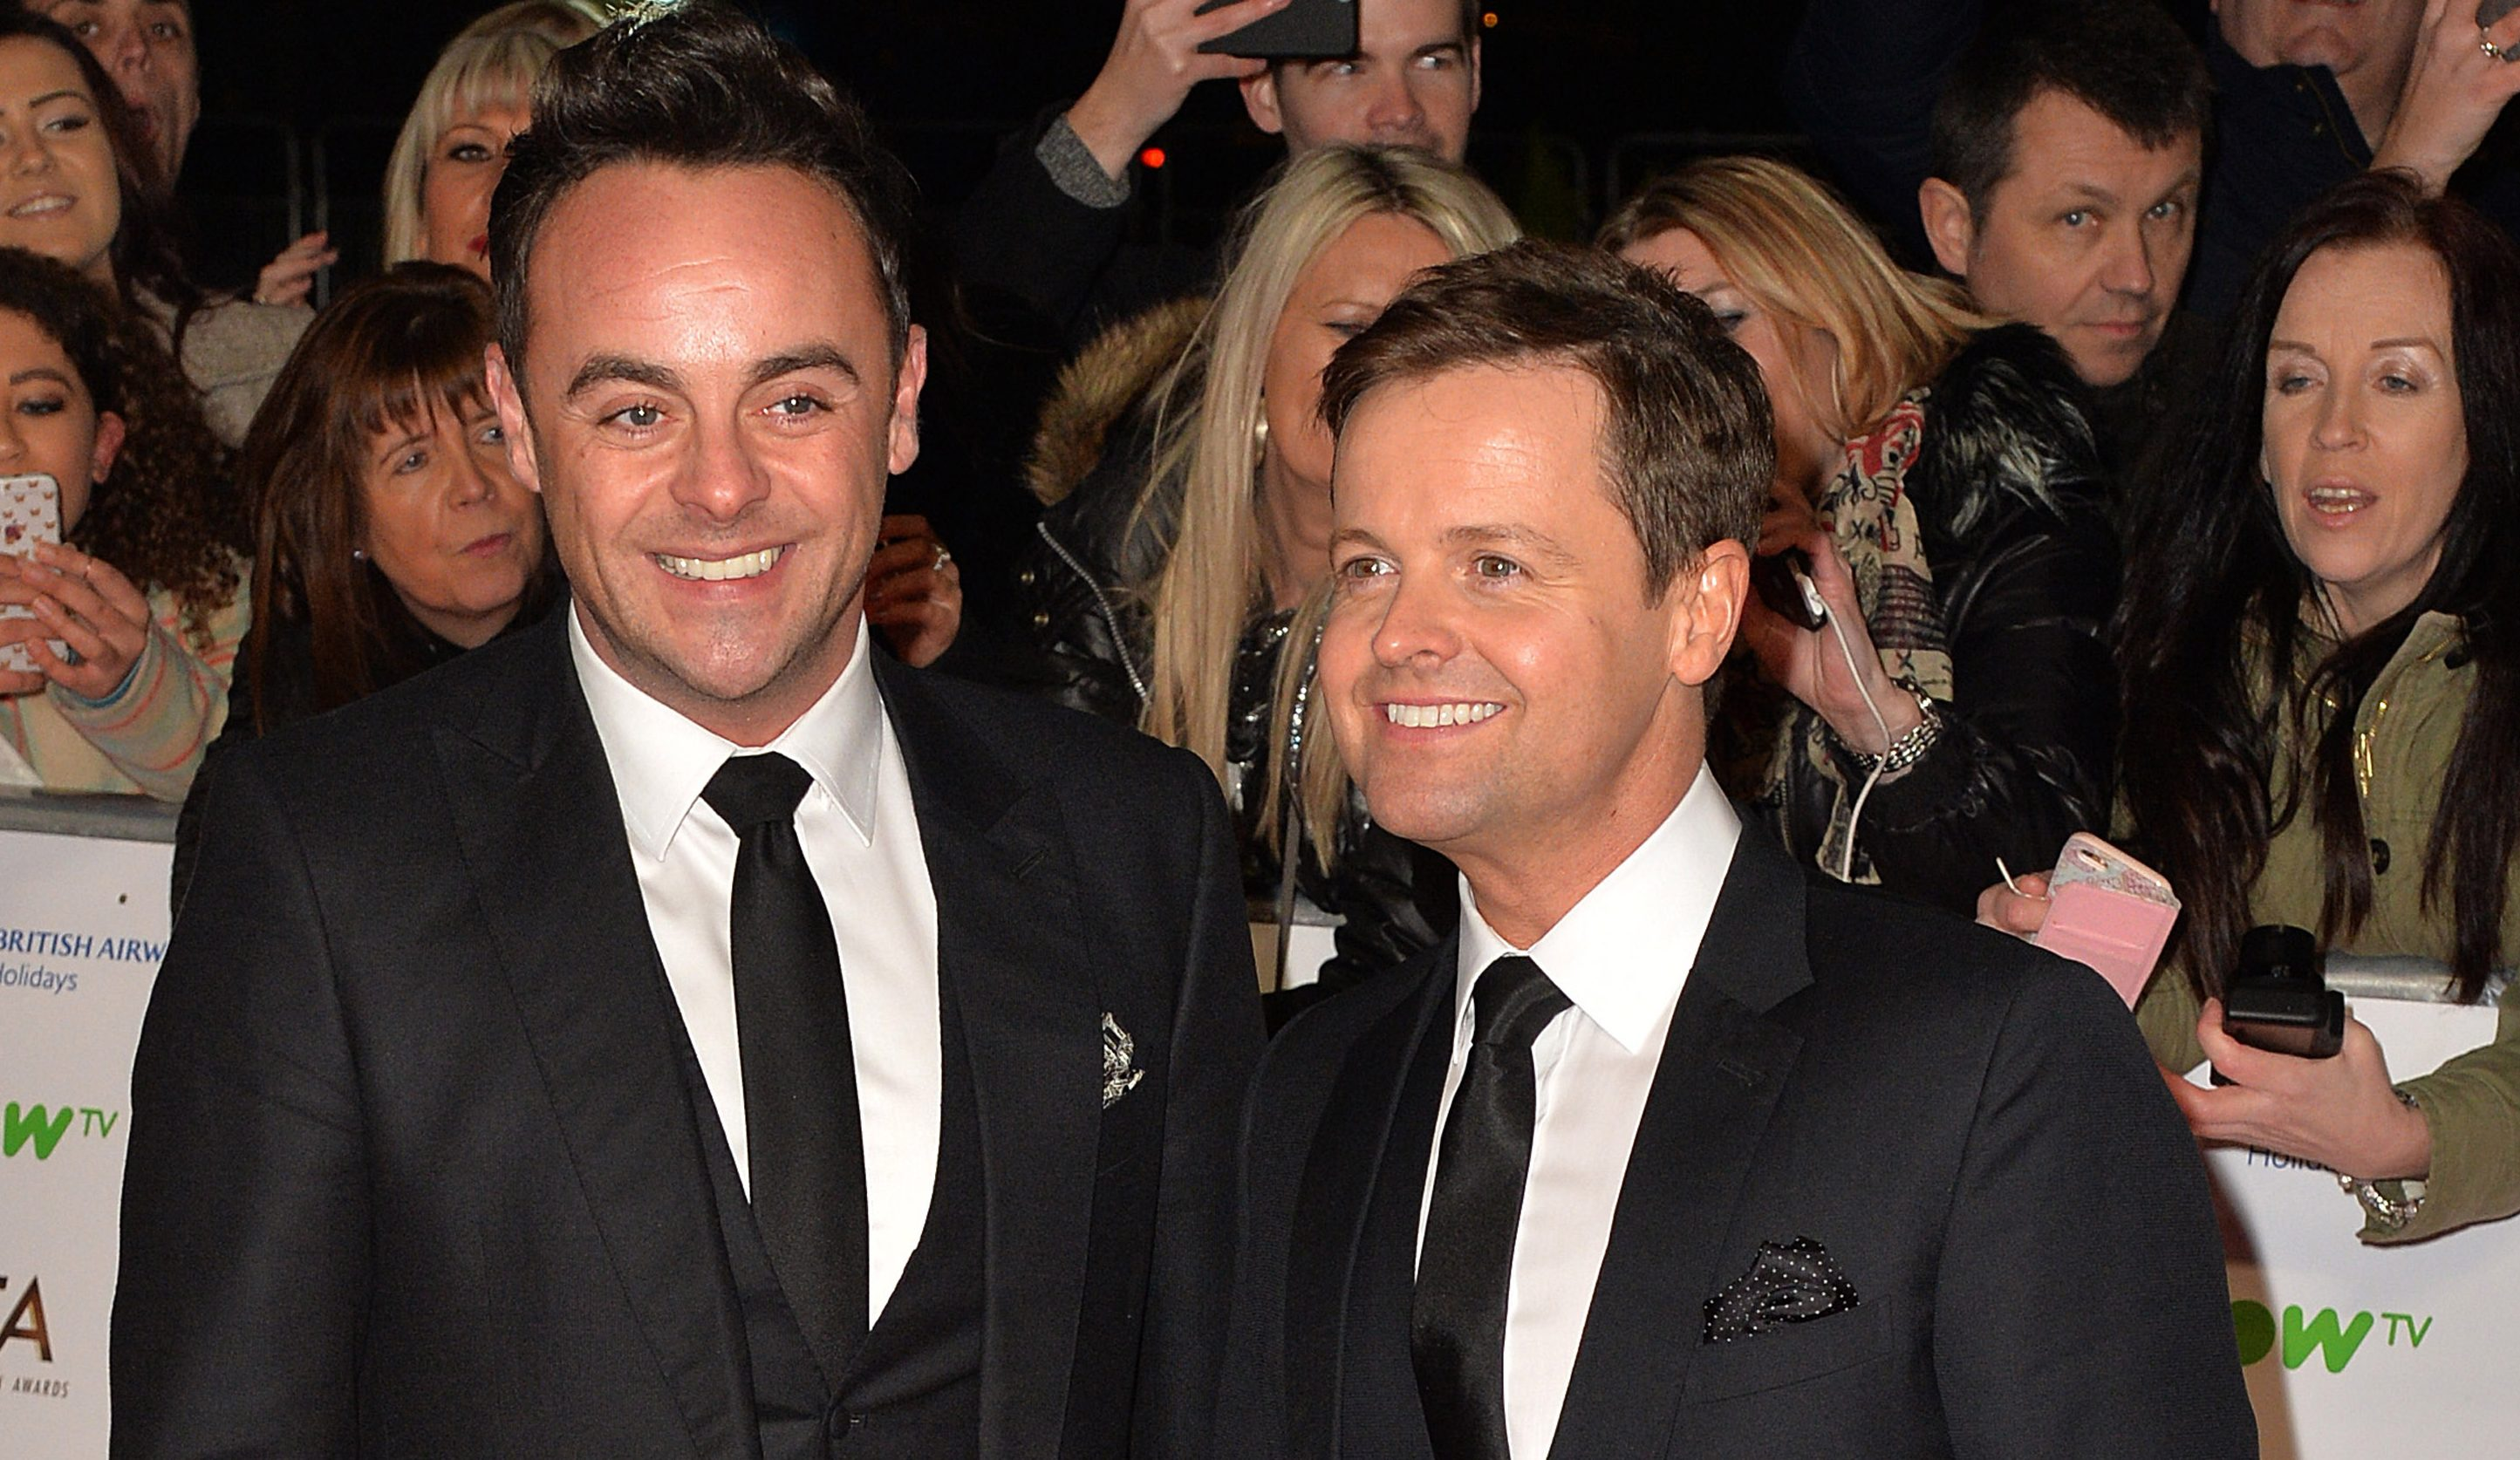 Are Ant and Dec considering a career change after Saturday Night Takeaway?